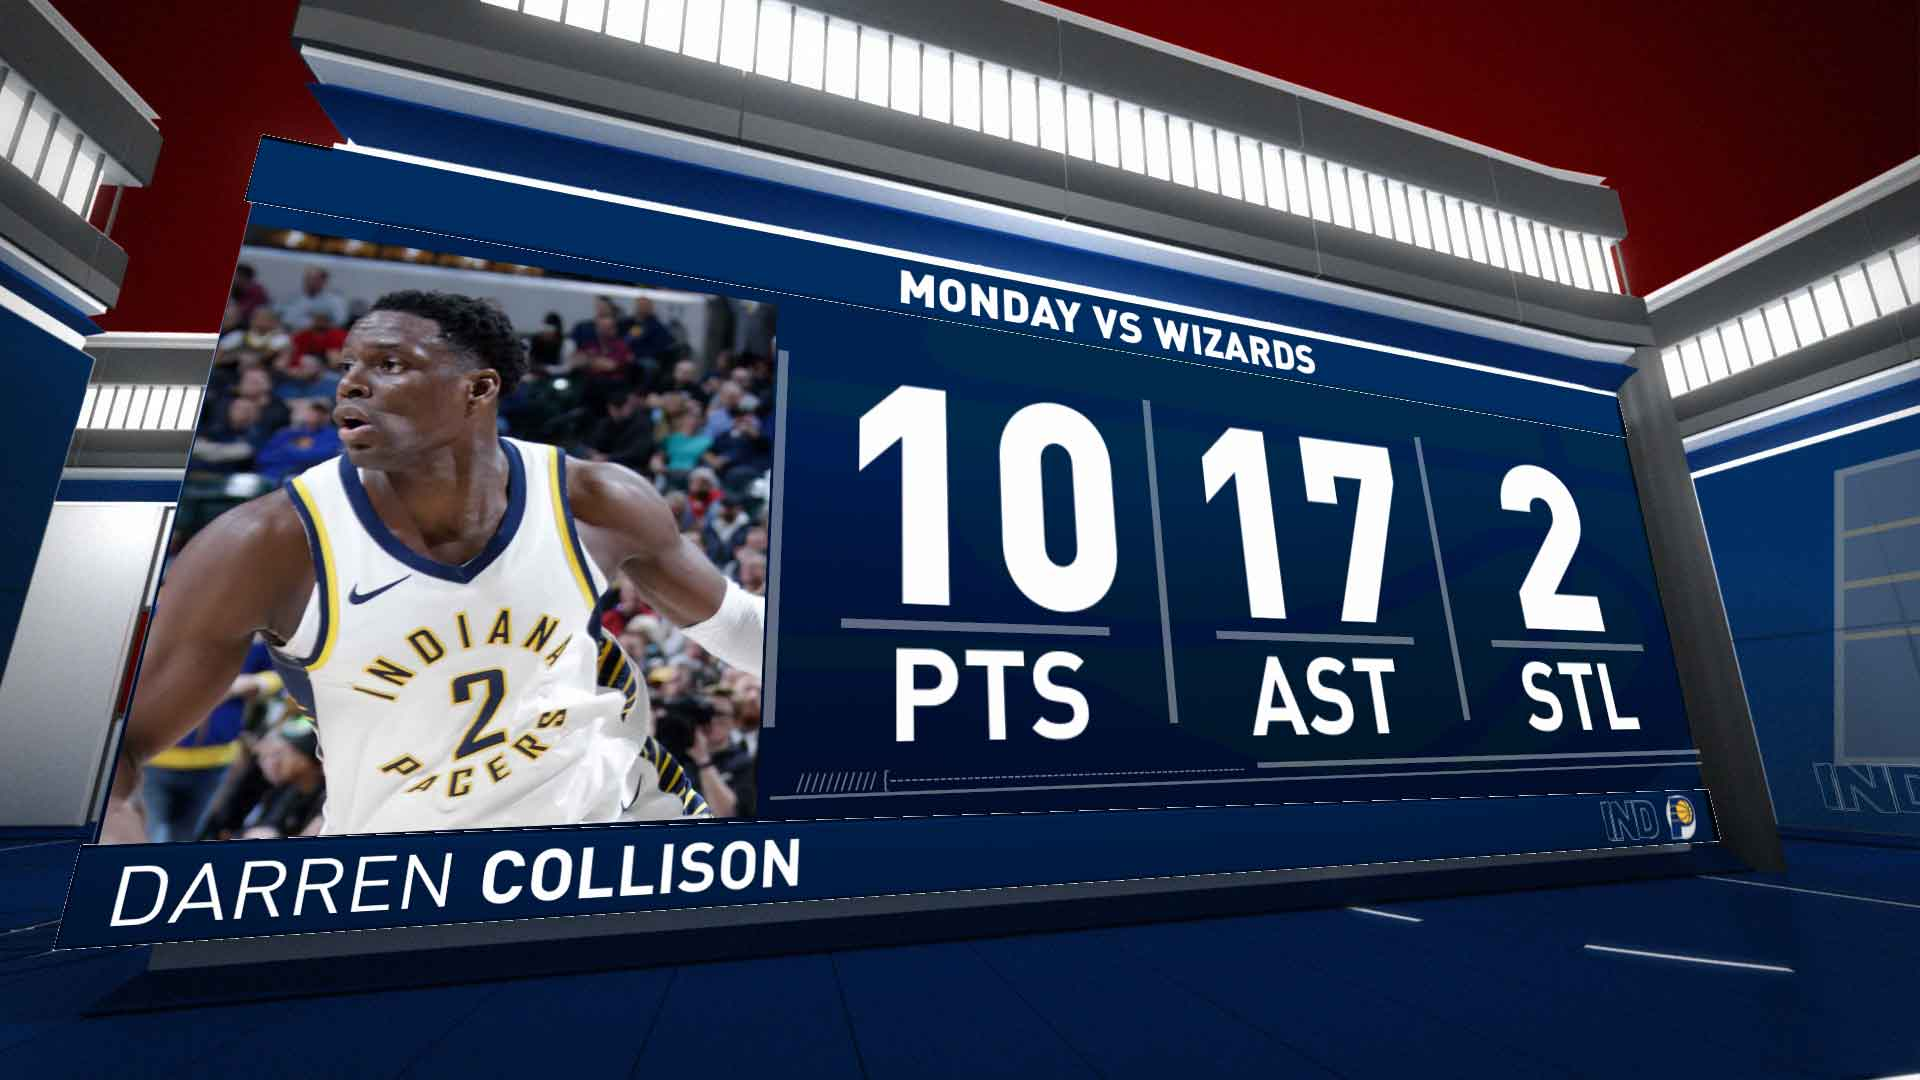 Darren Collison with 17 Assists vs. Washington Wizards